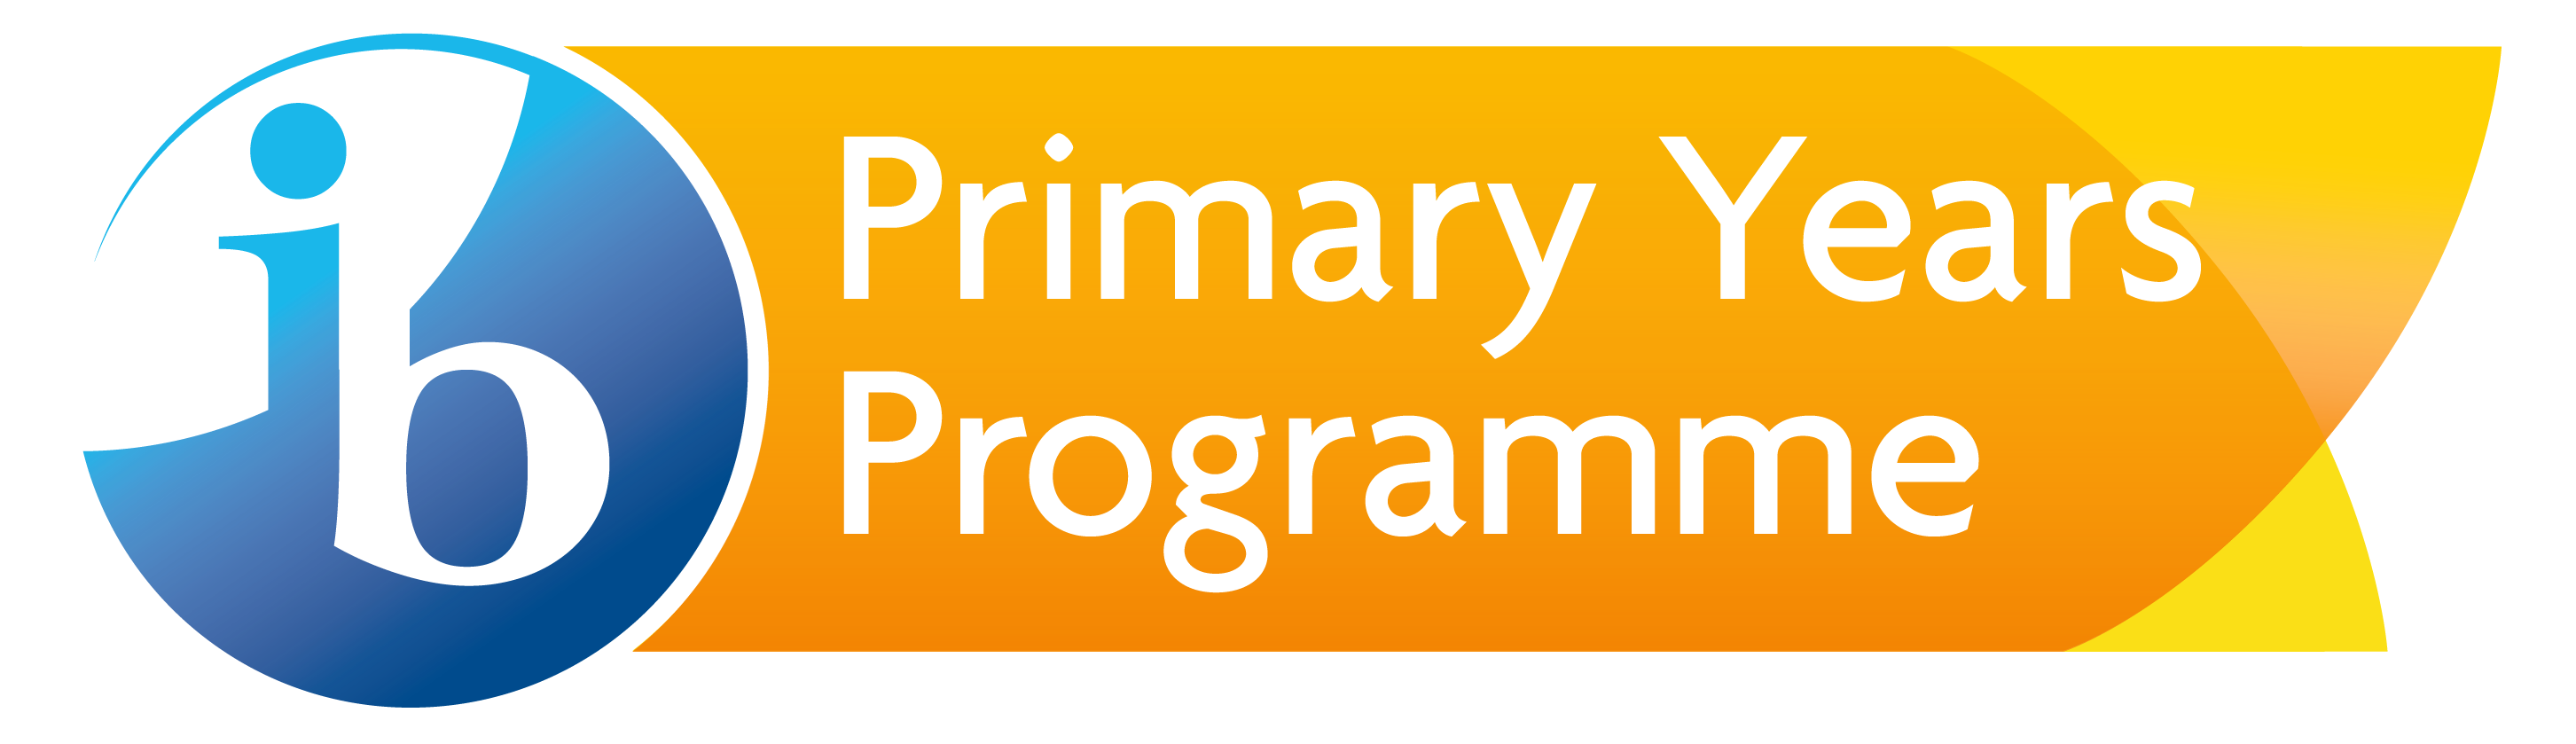 yellow square with Primary Years Programme written on the top